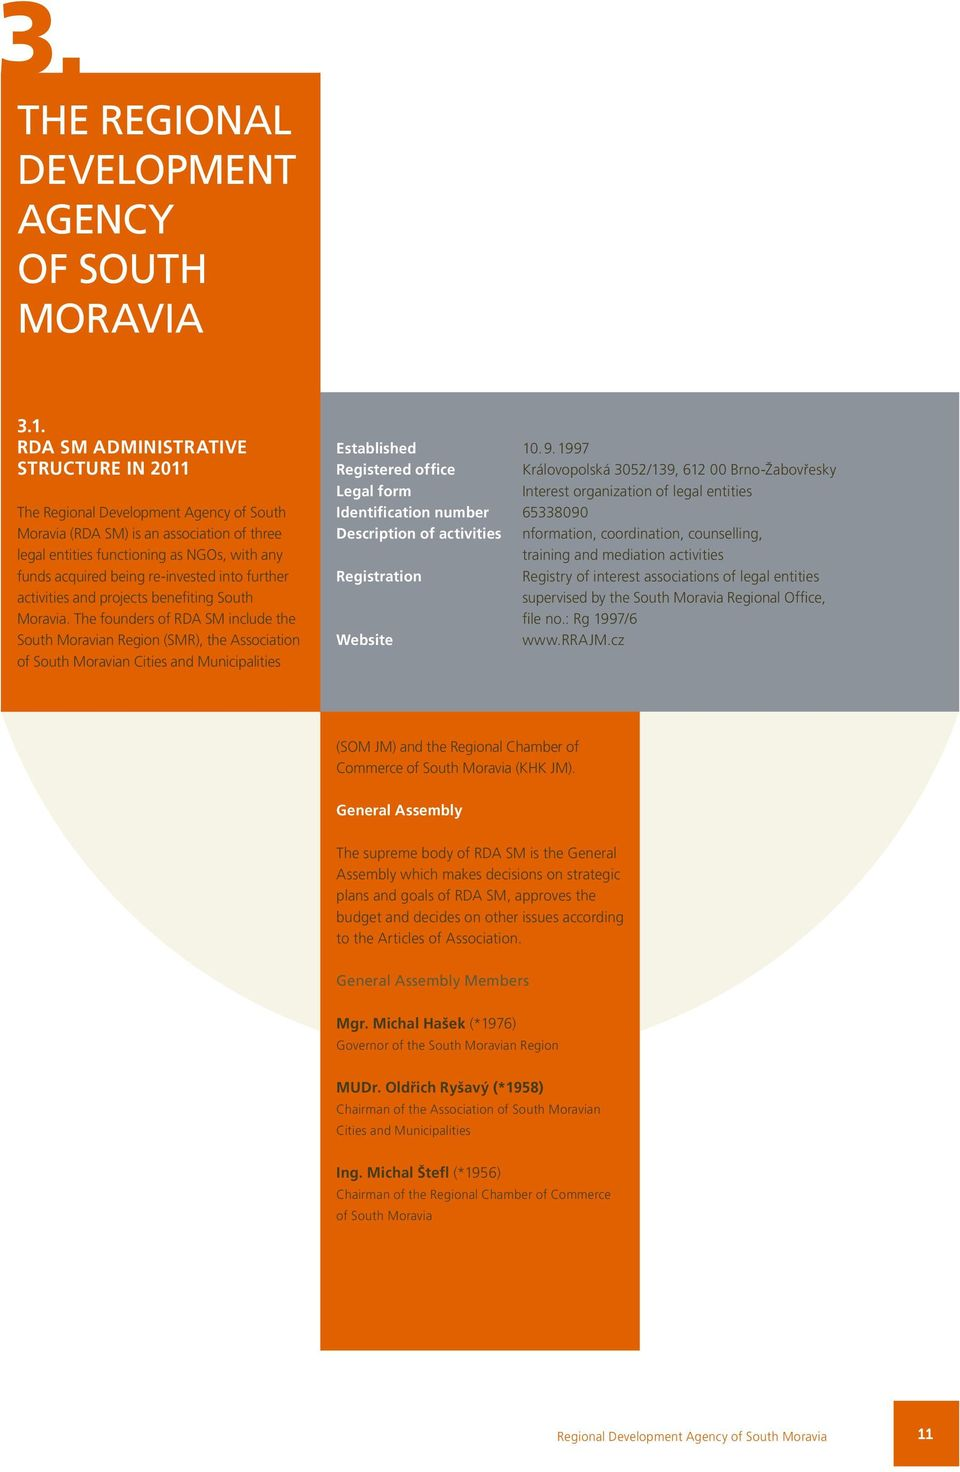 re-invested into further activities and projects benefiting South Moravia.